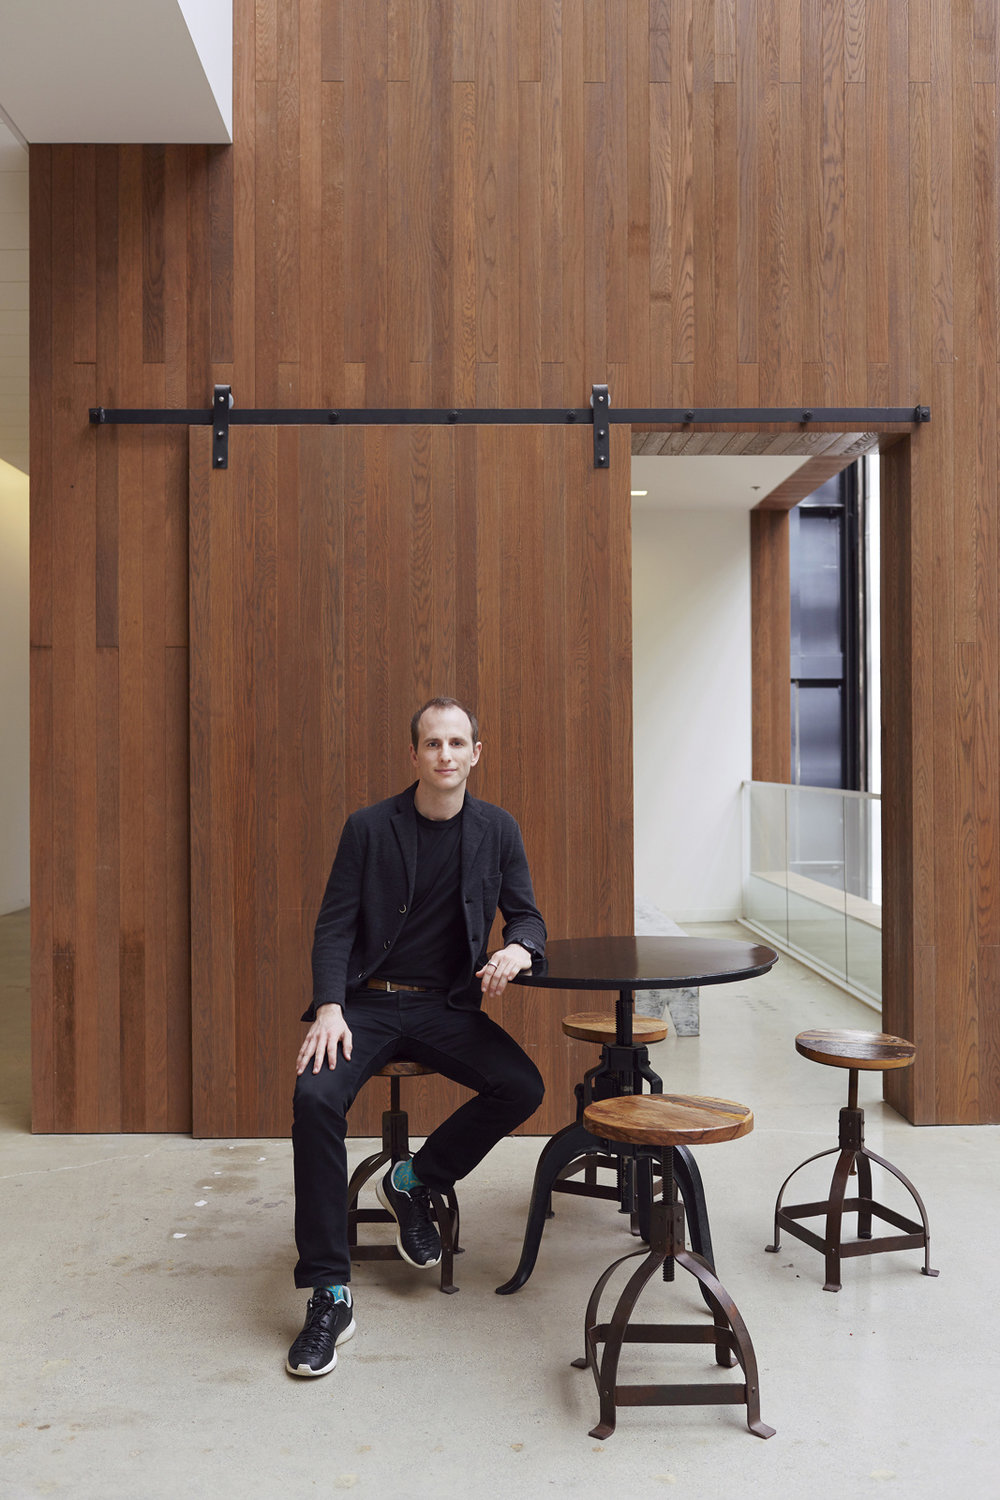 Joe Gebbia, Co-Founder of Airbnb, for Offscreen Magazine